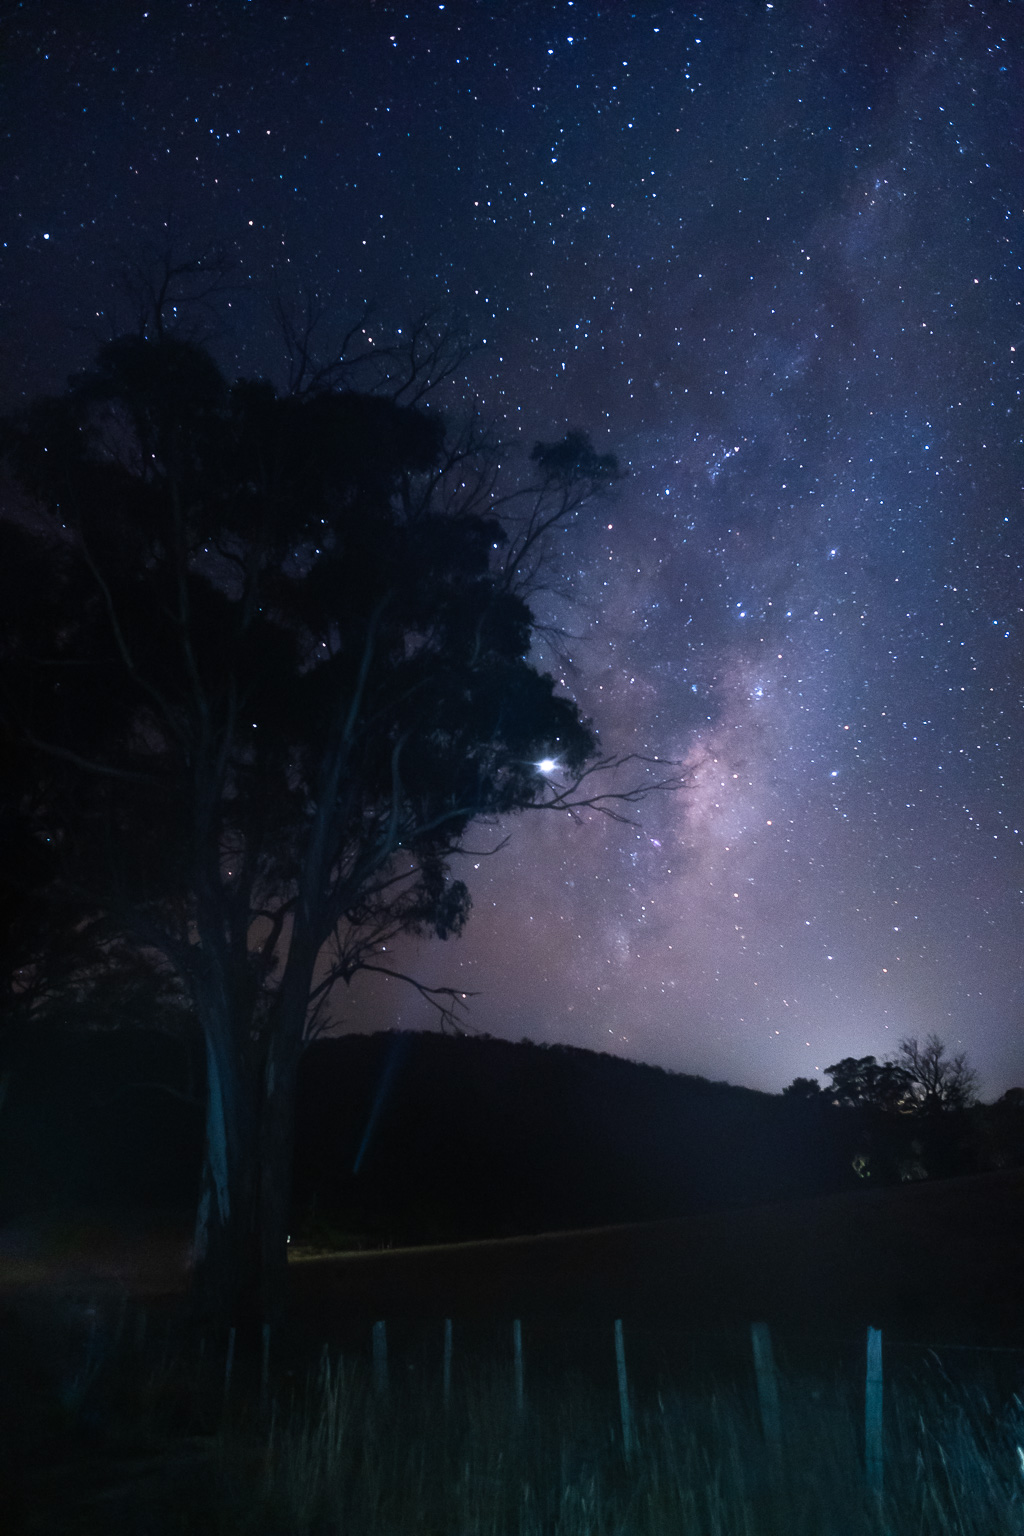 Hamlet Downs Astrophotography